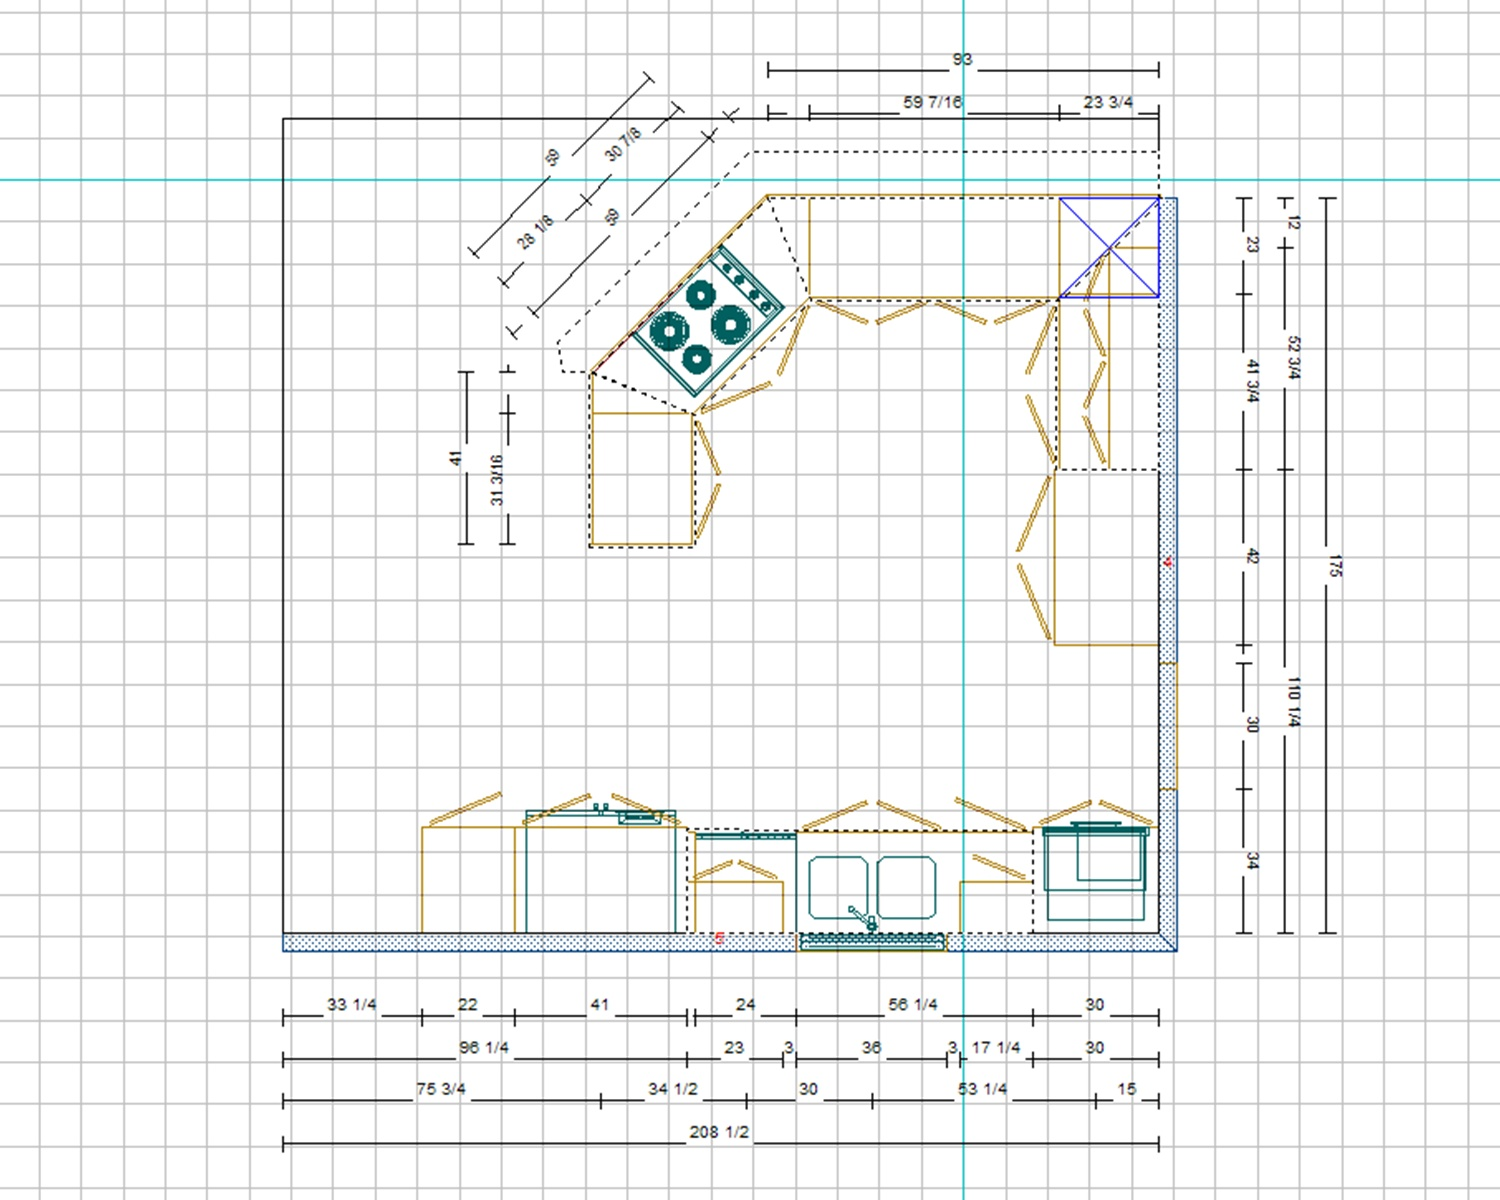 We provide detailed drawings for the electricians, plumbers, and carpenters. No surprises, for a smoother project for all.